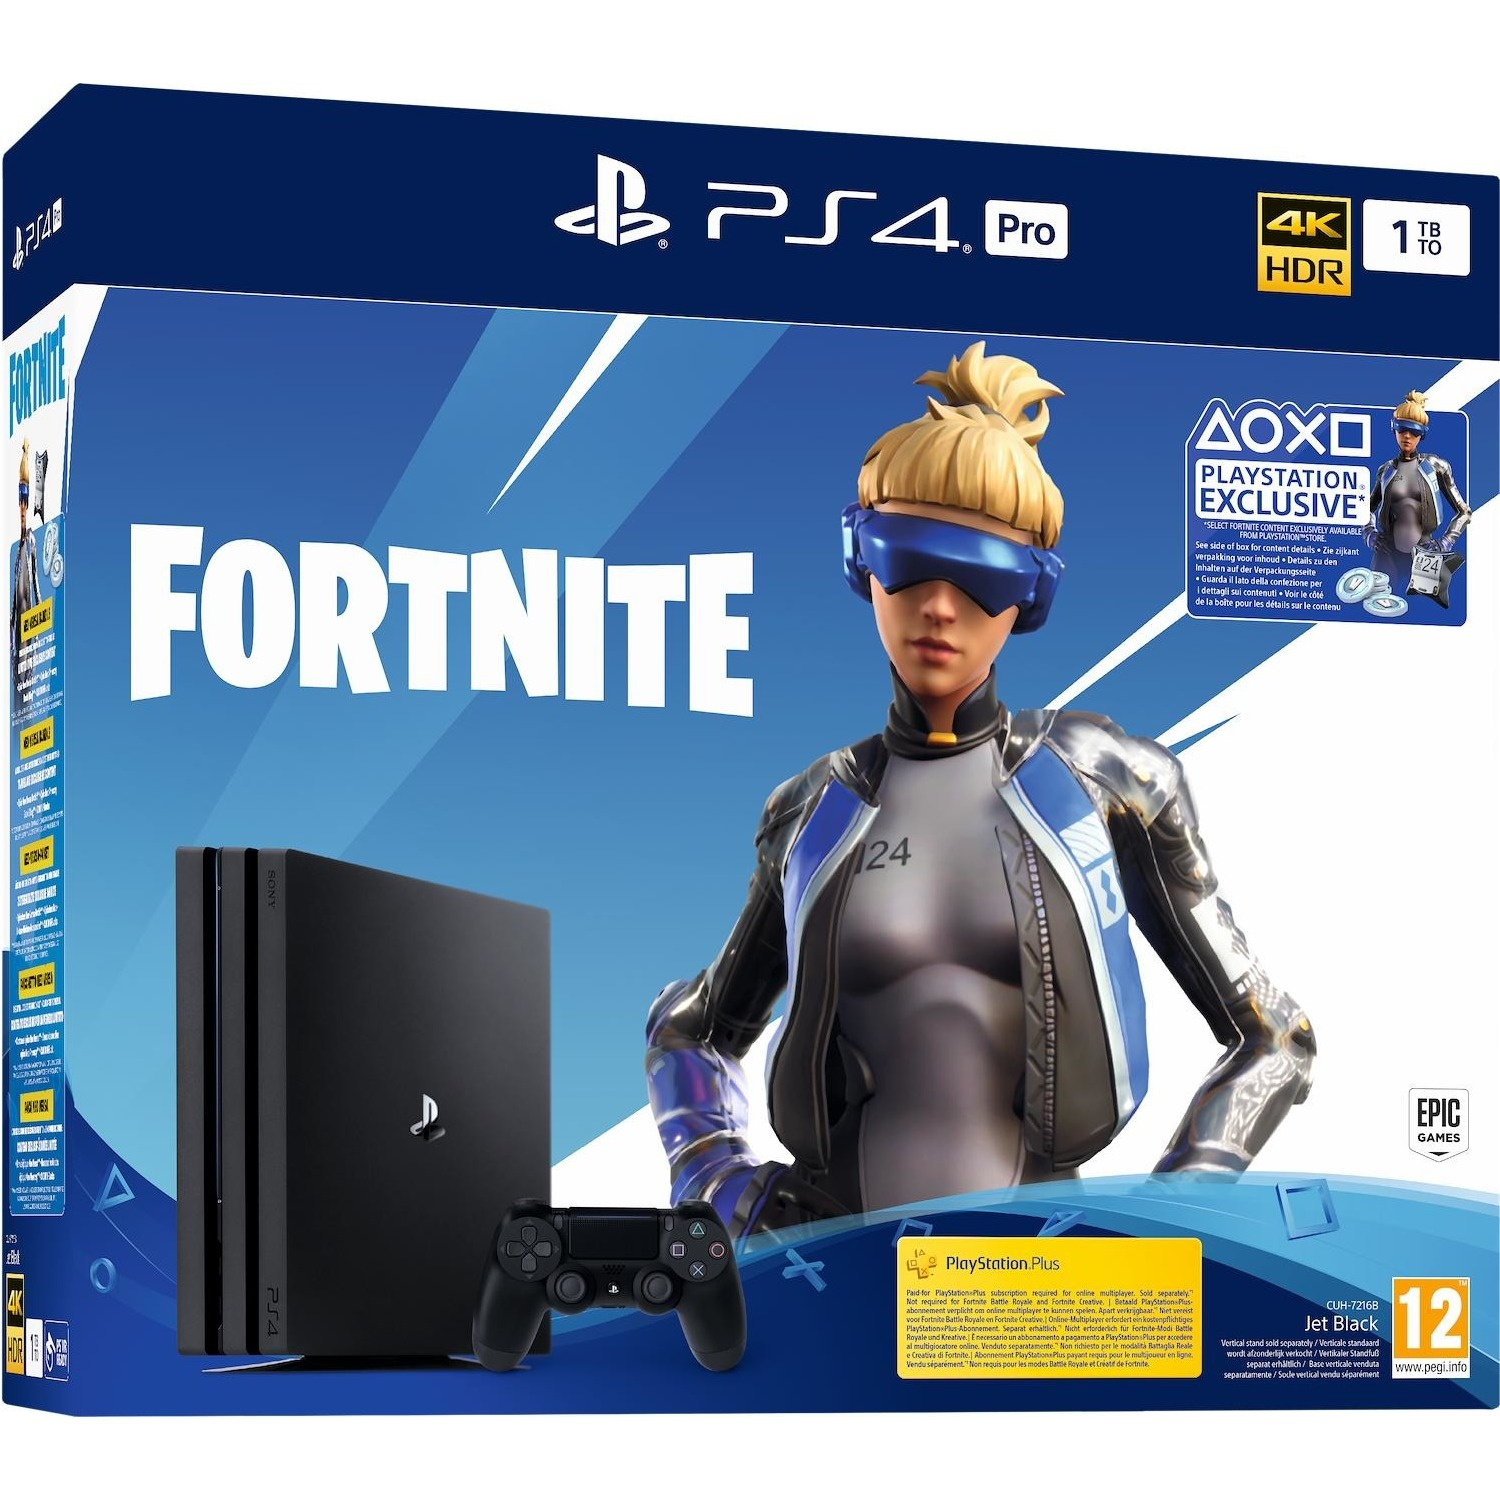 Immagine per Playstation Sony PS4 1TB PRO Gamma + Fortnite Voucher 2019 da DIMOStore